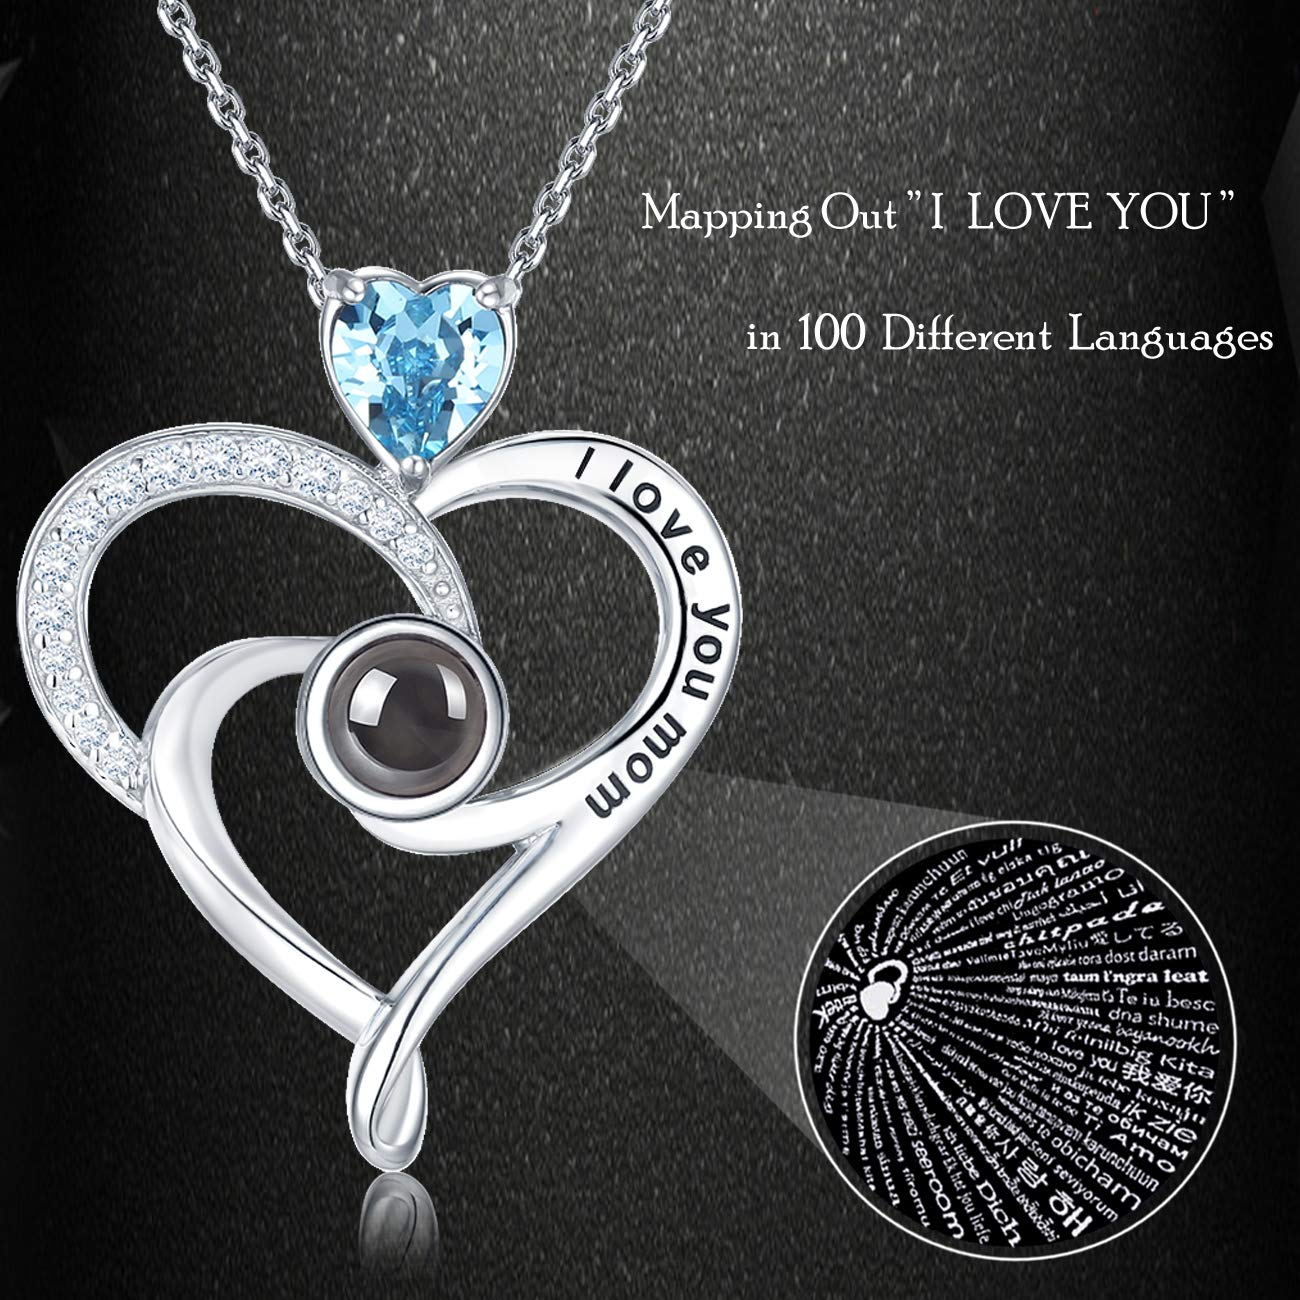 20 Chain Elda/&Co Necklace 100 Languages I Love You Mom Sterling Silver Pendant Jewelry Birthday Gifts for Mom Anniversary White Simulated Diamond Pendant